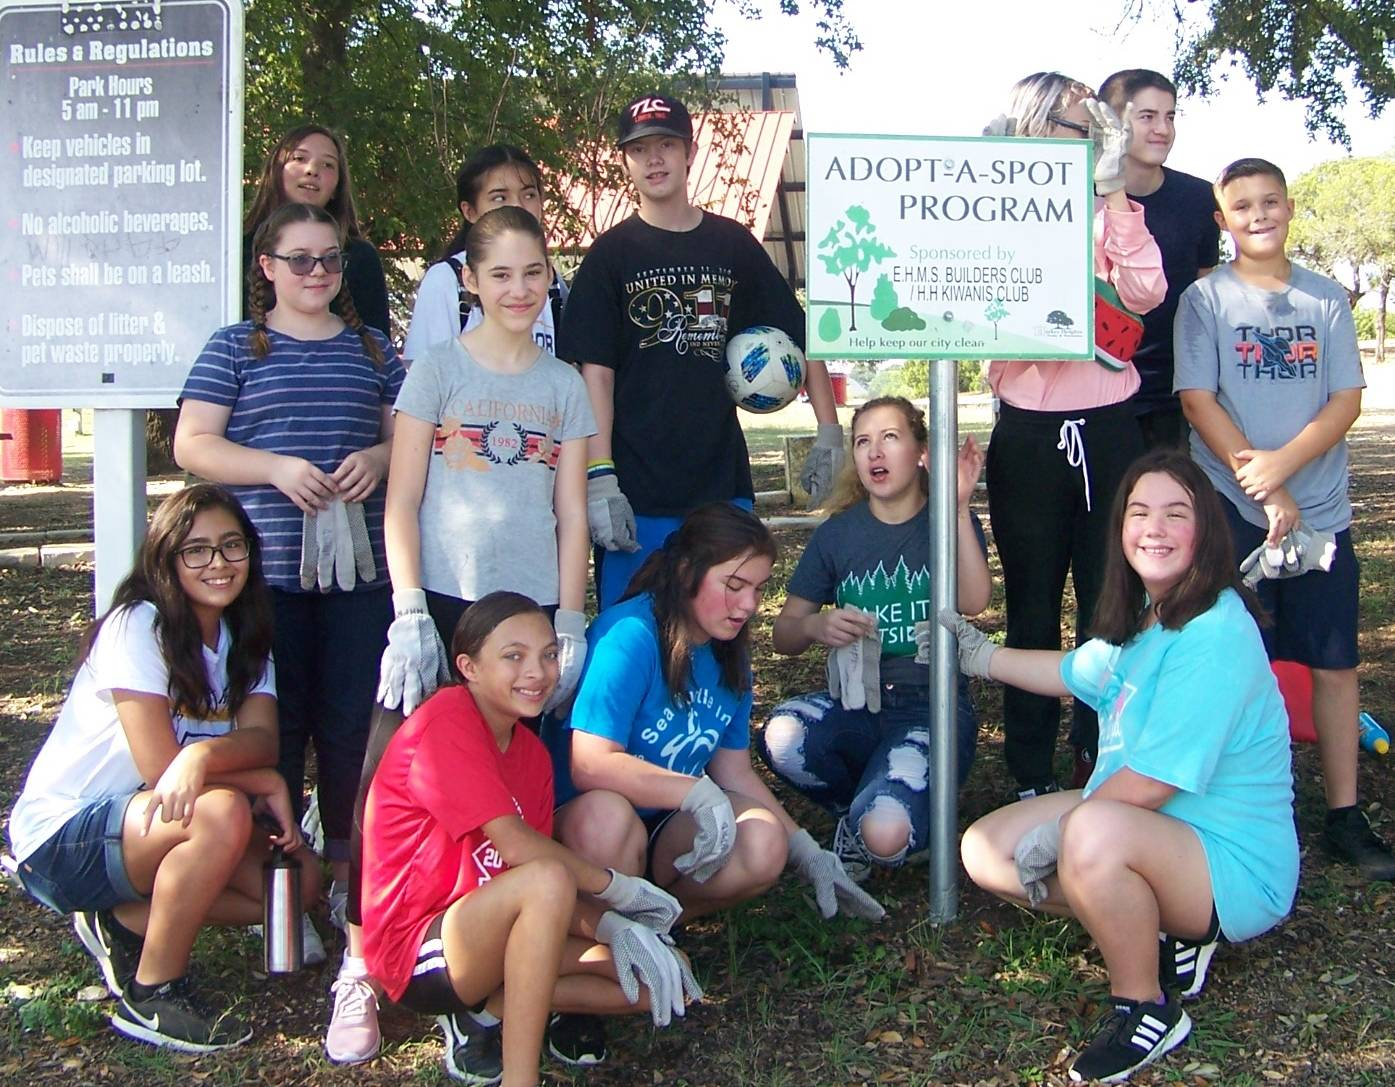 Adopt-a-Spot at the Harker Heights Community Park